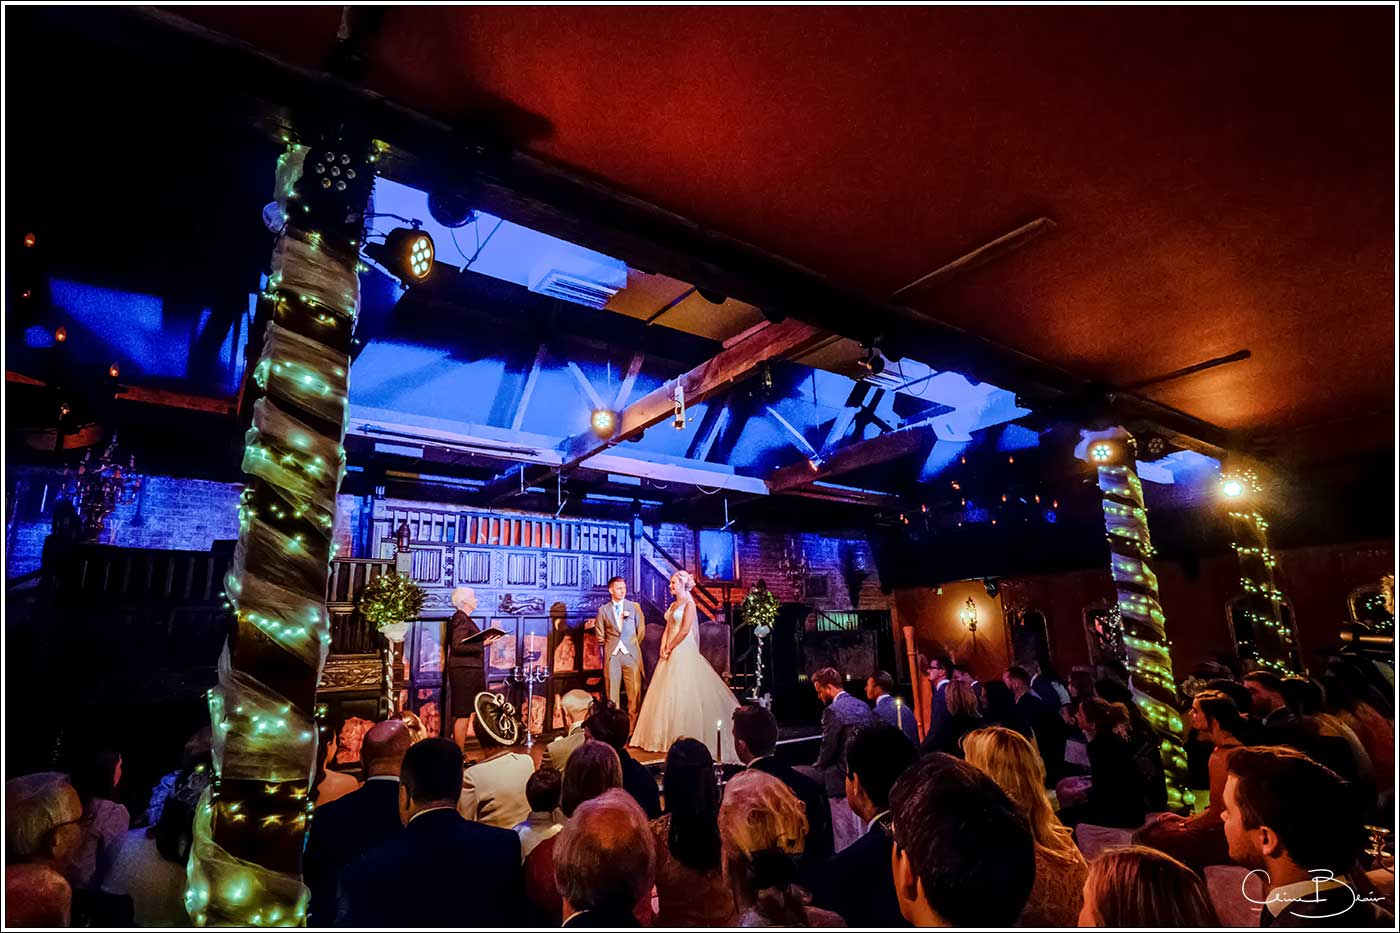 Coombe Abbey wedding photography showing the ambience of a wedding ceremony in the Abbeygate